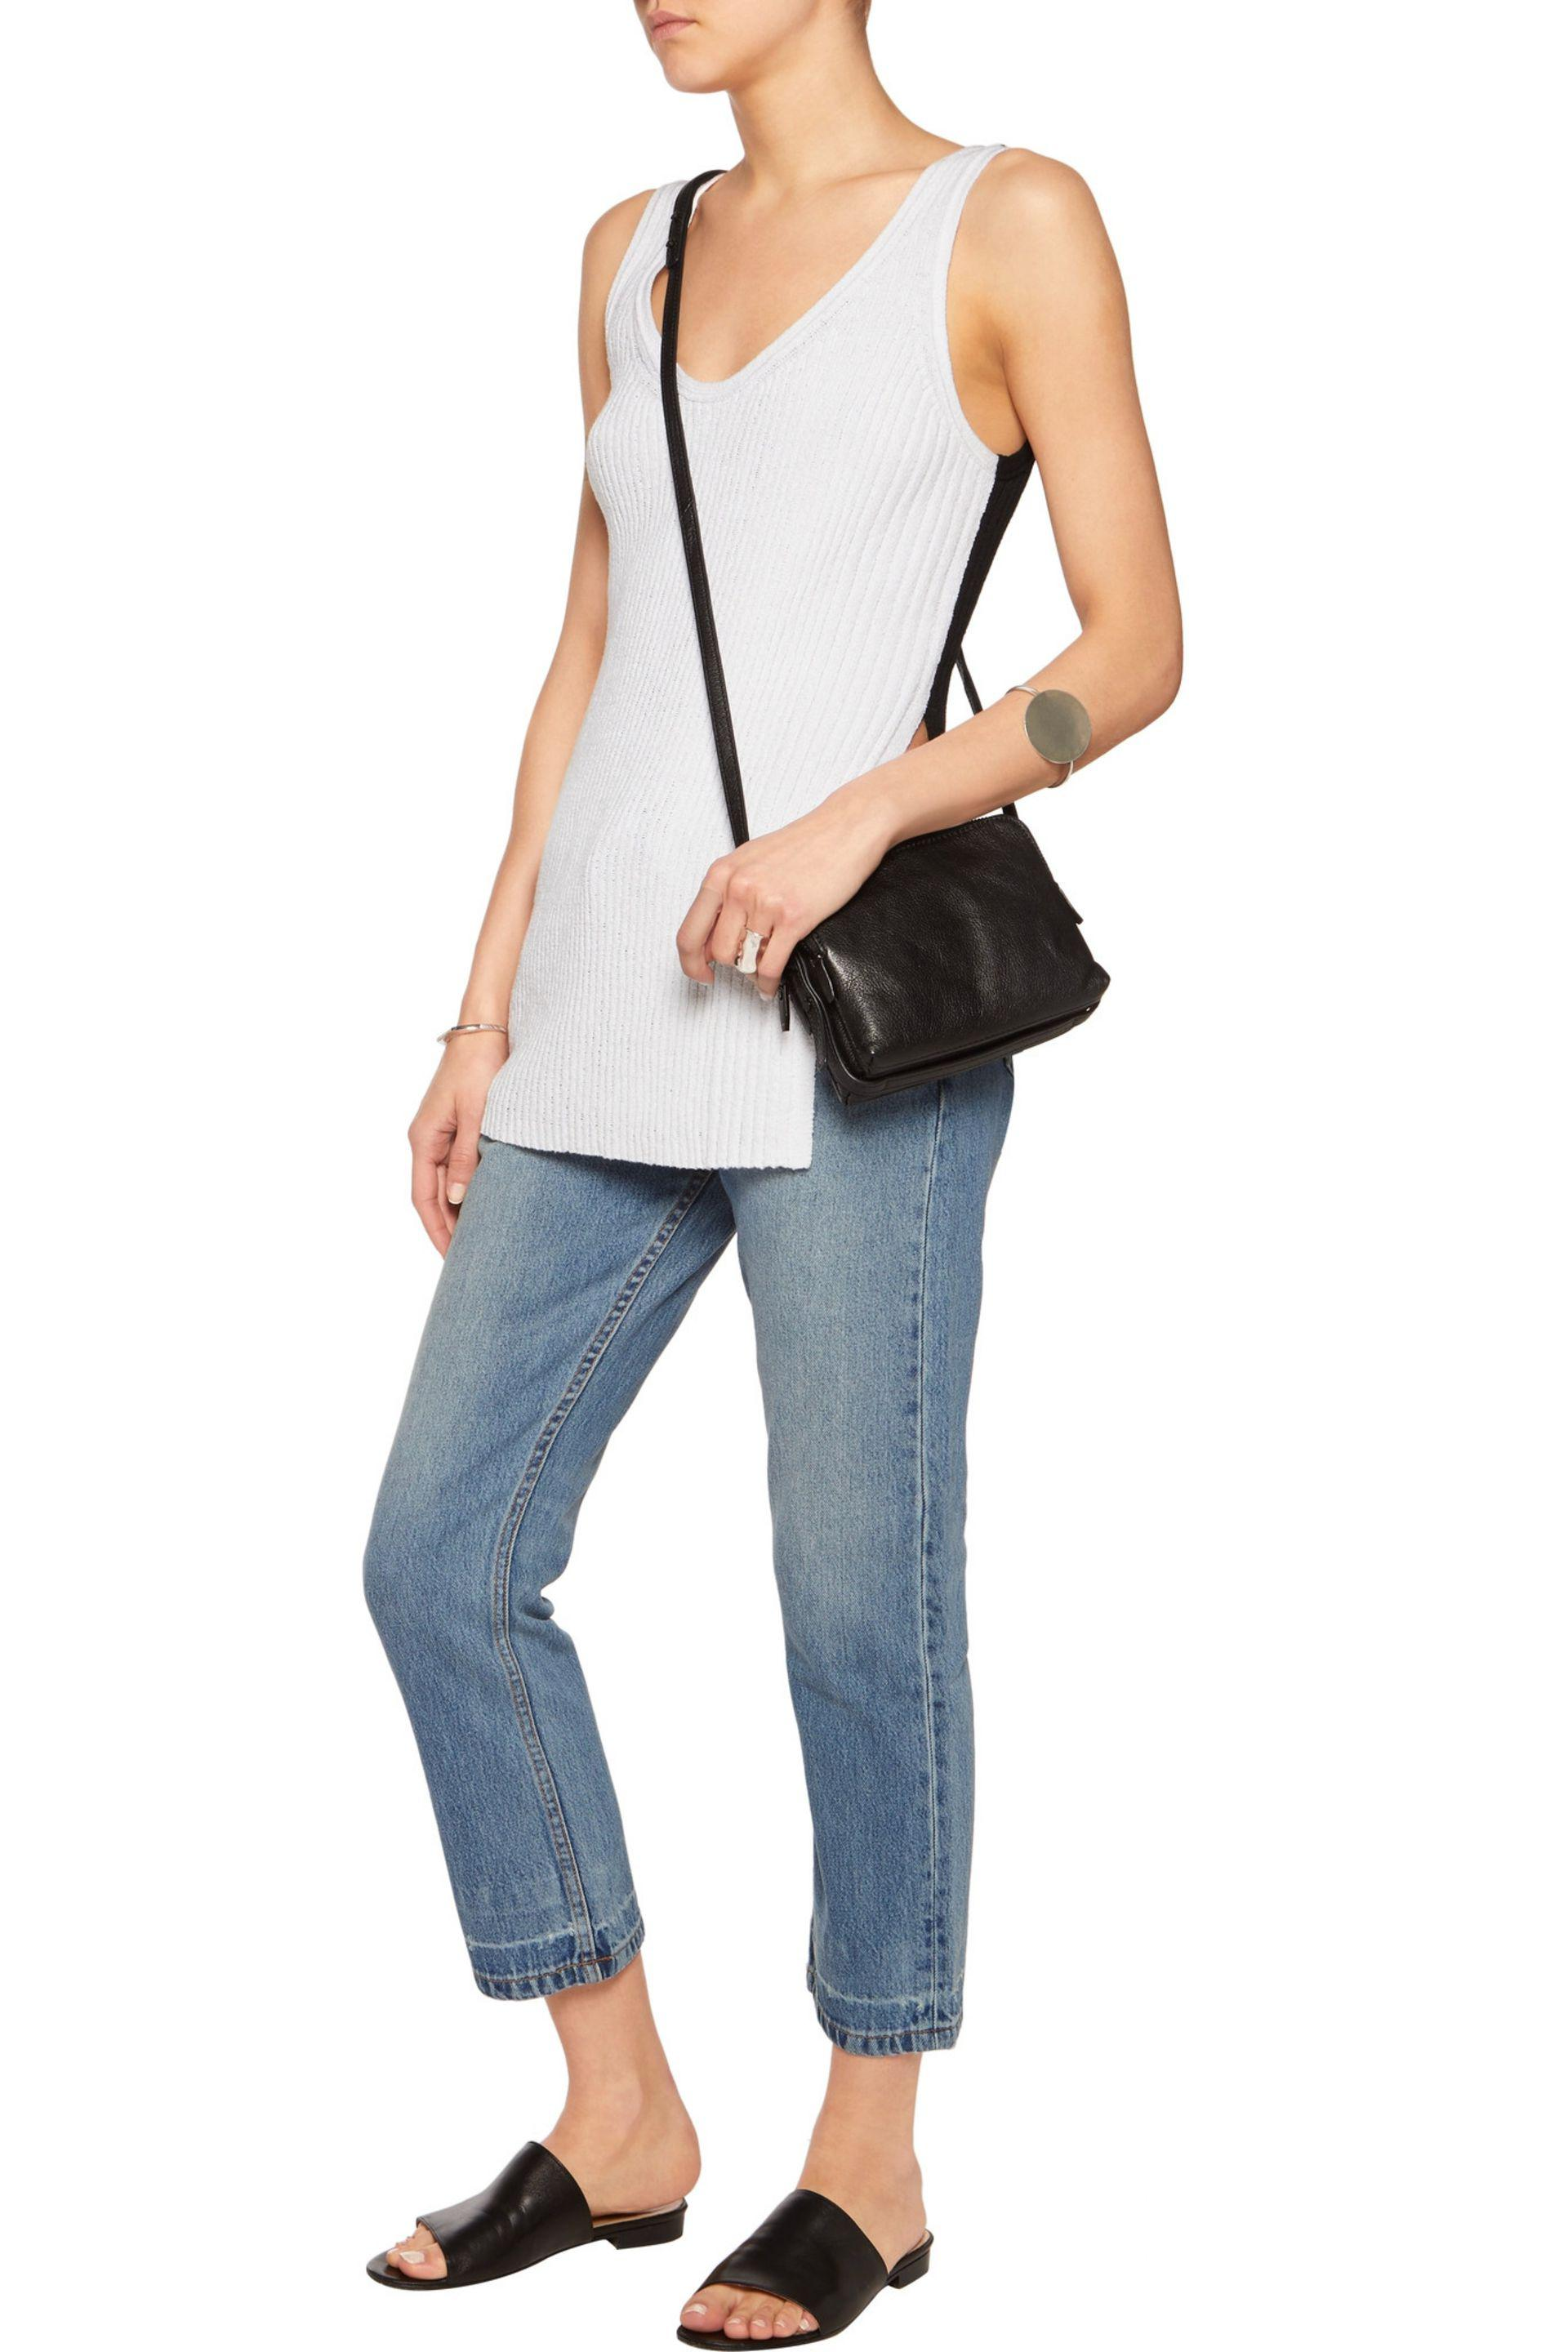 a28a7a8c247 marc-by-marc-jacobs -Mid-denim-High-rise-Cropped-Straight-leg-Jeans-Mid-Denim.jpeg